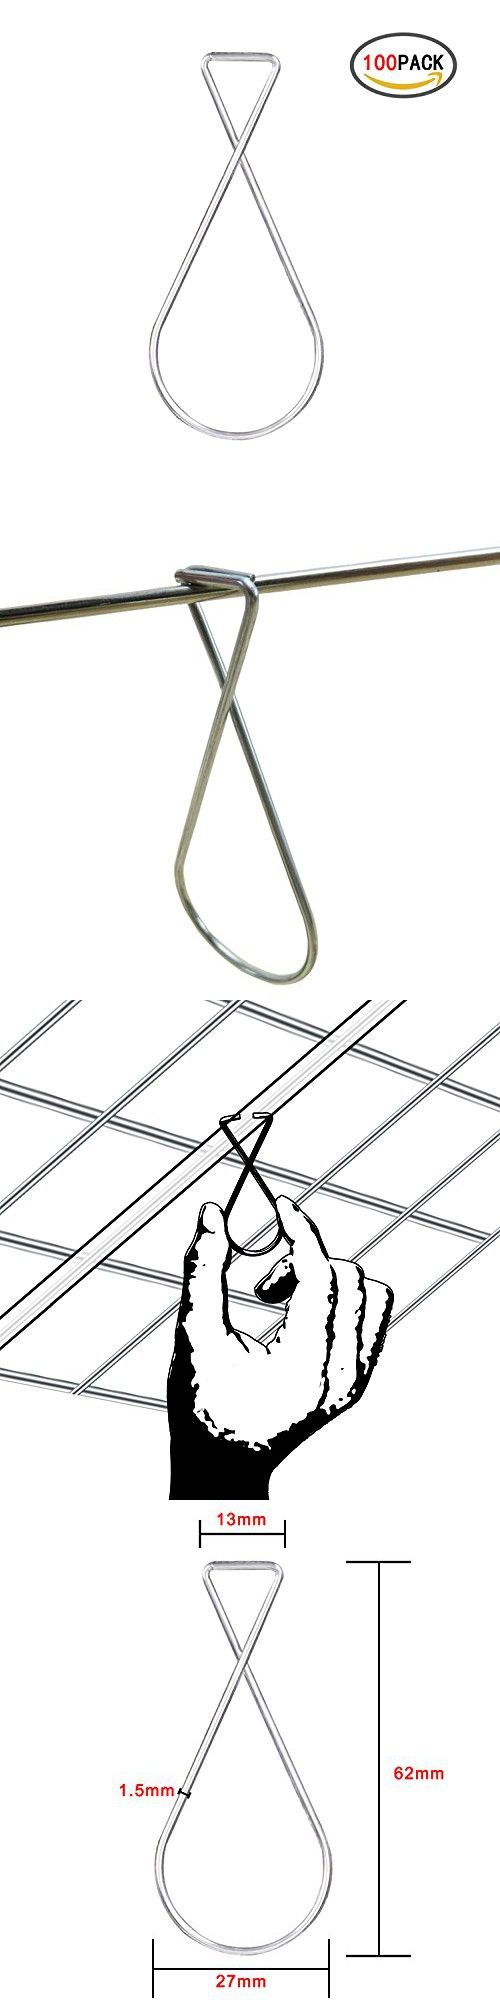 YourGift 100 Pack Ceiling Hook Clips for Home Decorations, Wedding Decorations, Office, Classroom